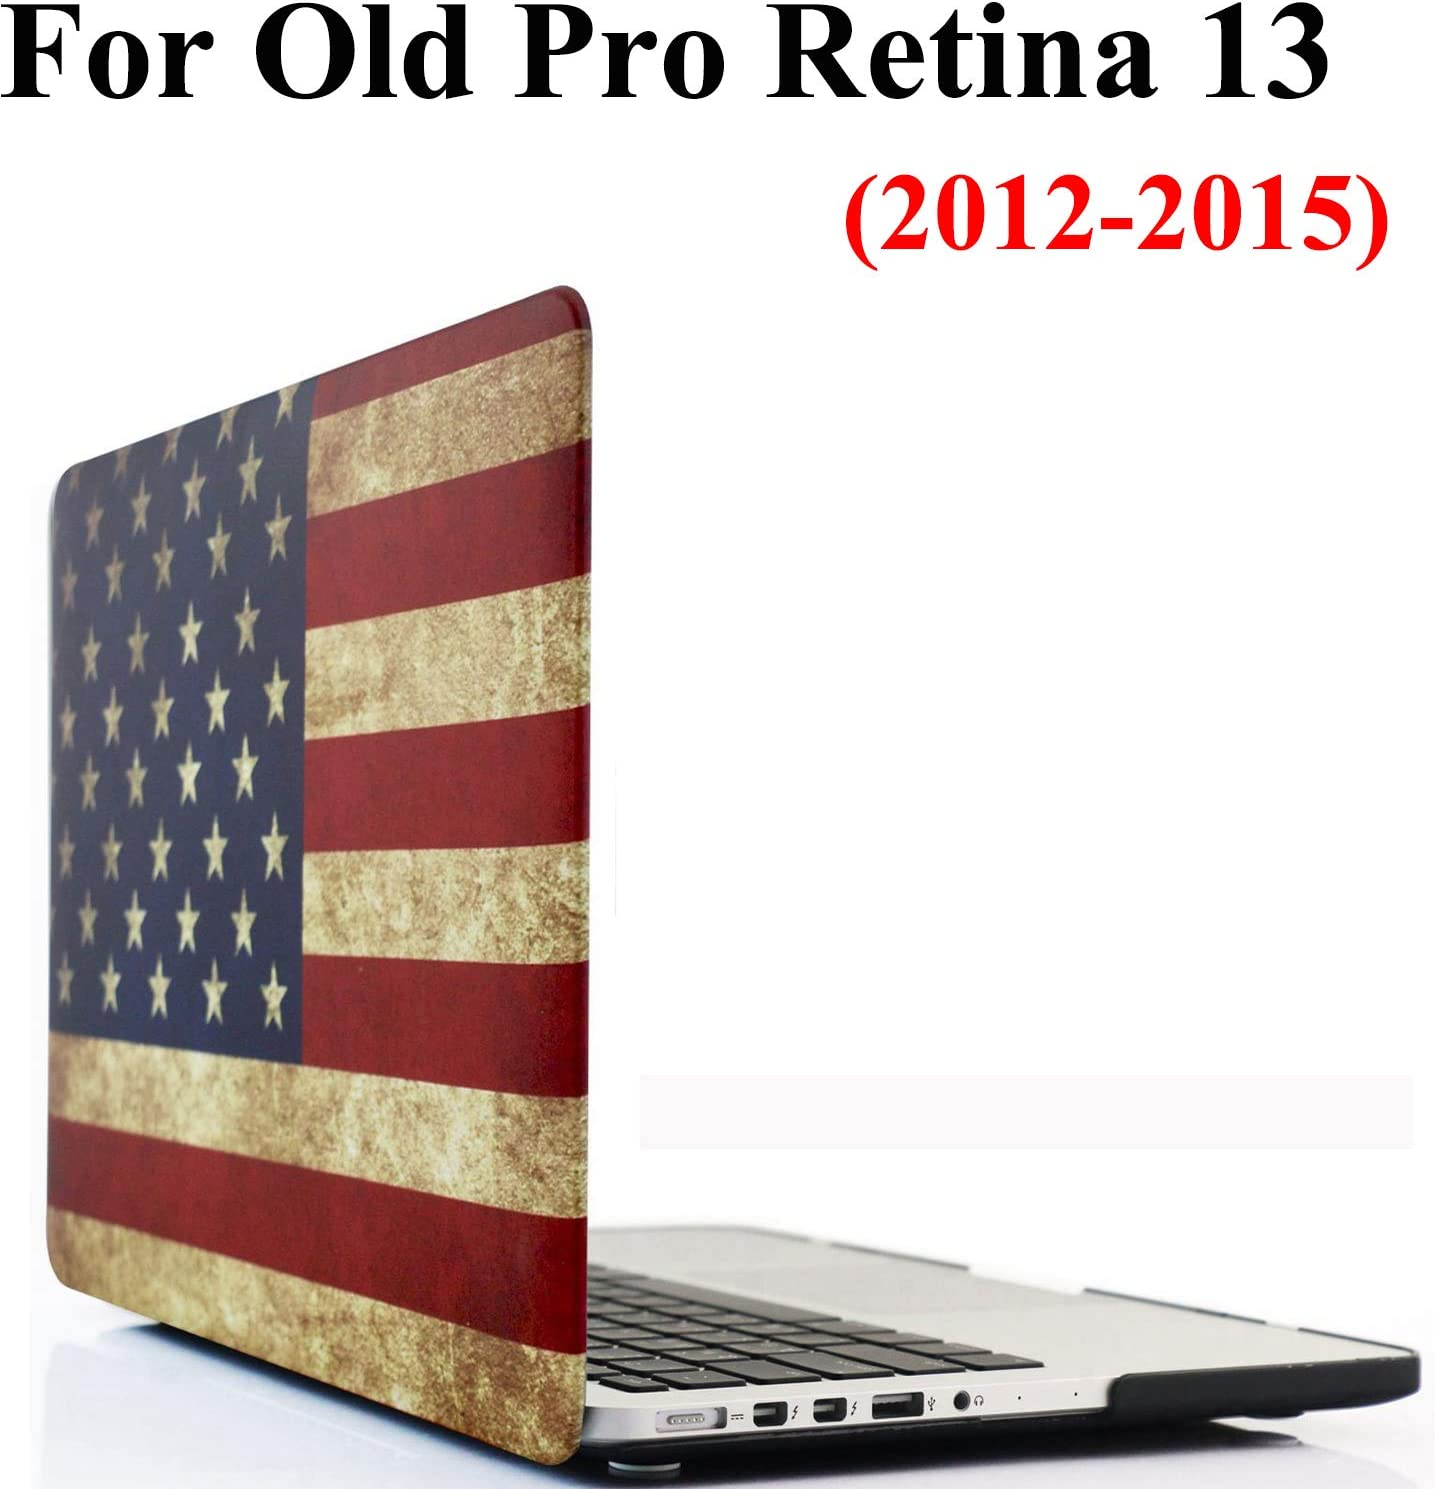 Old MacBook Pro Retina 13 Inch NO CD-ROM Drive Case A1502/A1425, iZi Way Rubberized Hard Shell Case Cover for Previous Mac Pro 13 with Retina Display (2015-2012 Late) - Retro American Flag